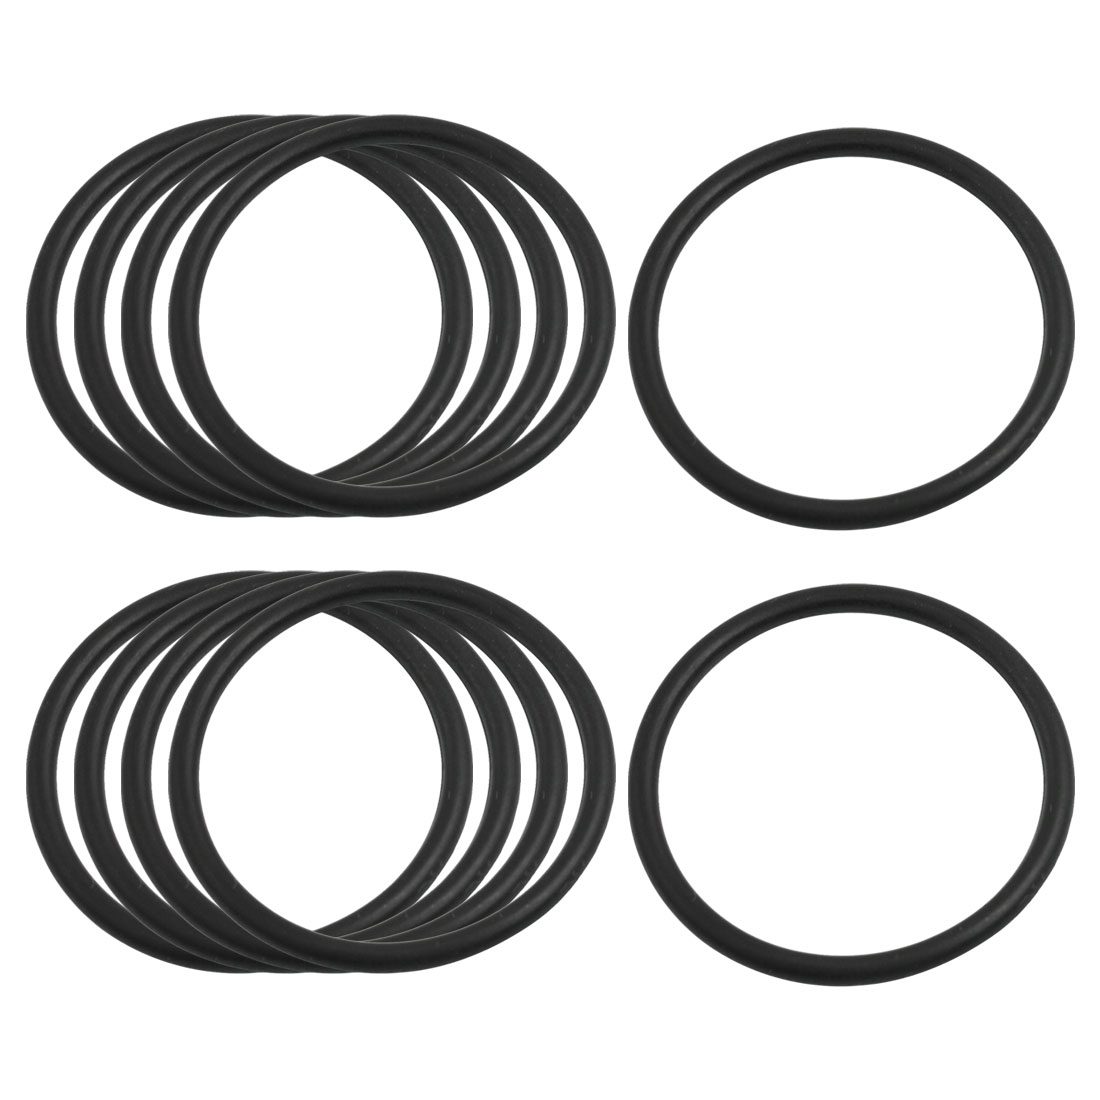 UXCELL 3.1Mm X 45Mm Black Nitrile Rubber Sealing O Ring Seal Washer Grommets 10 Pcs